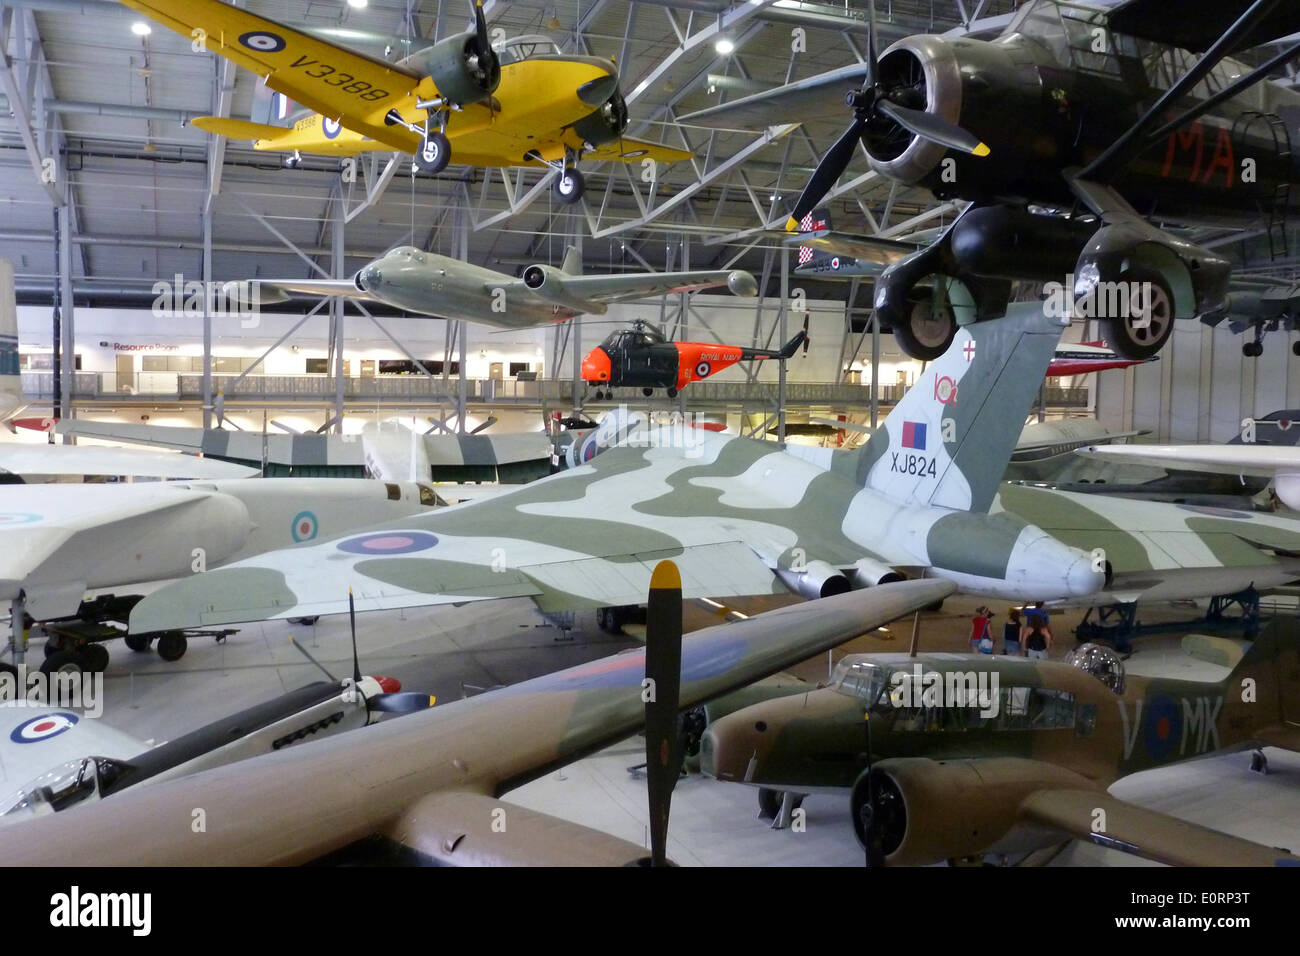 Aircraft on display at Duxford Imperial War Museum in Cambridgeshire, UK Stock Photo